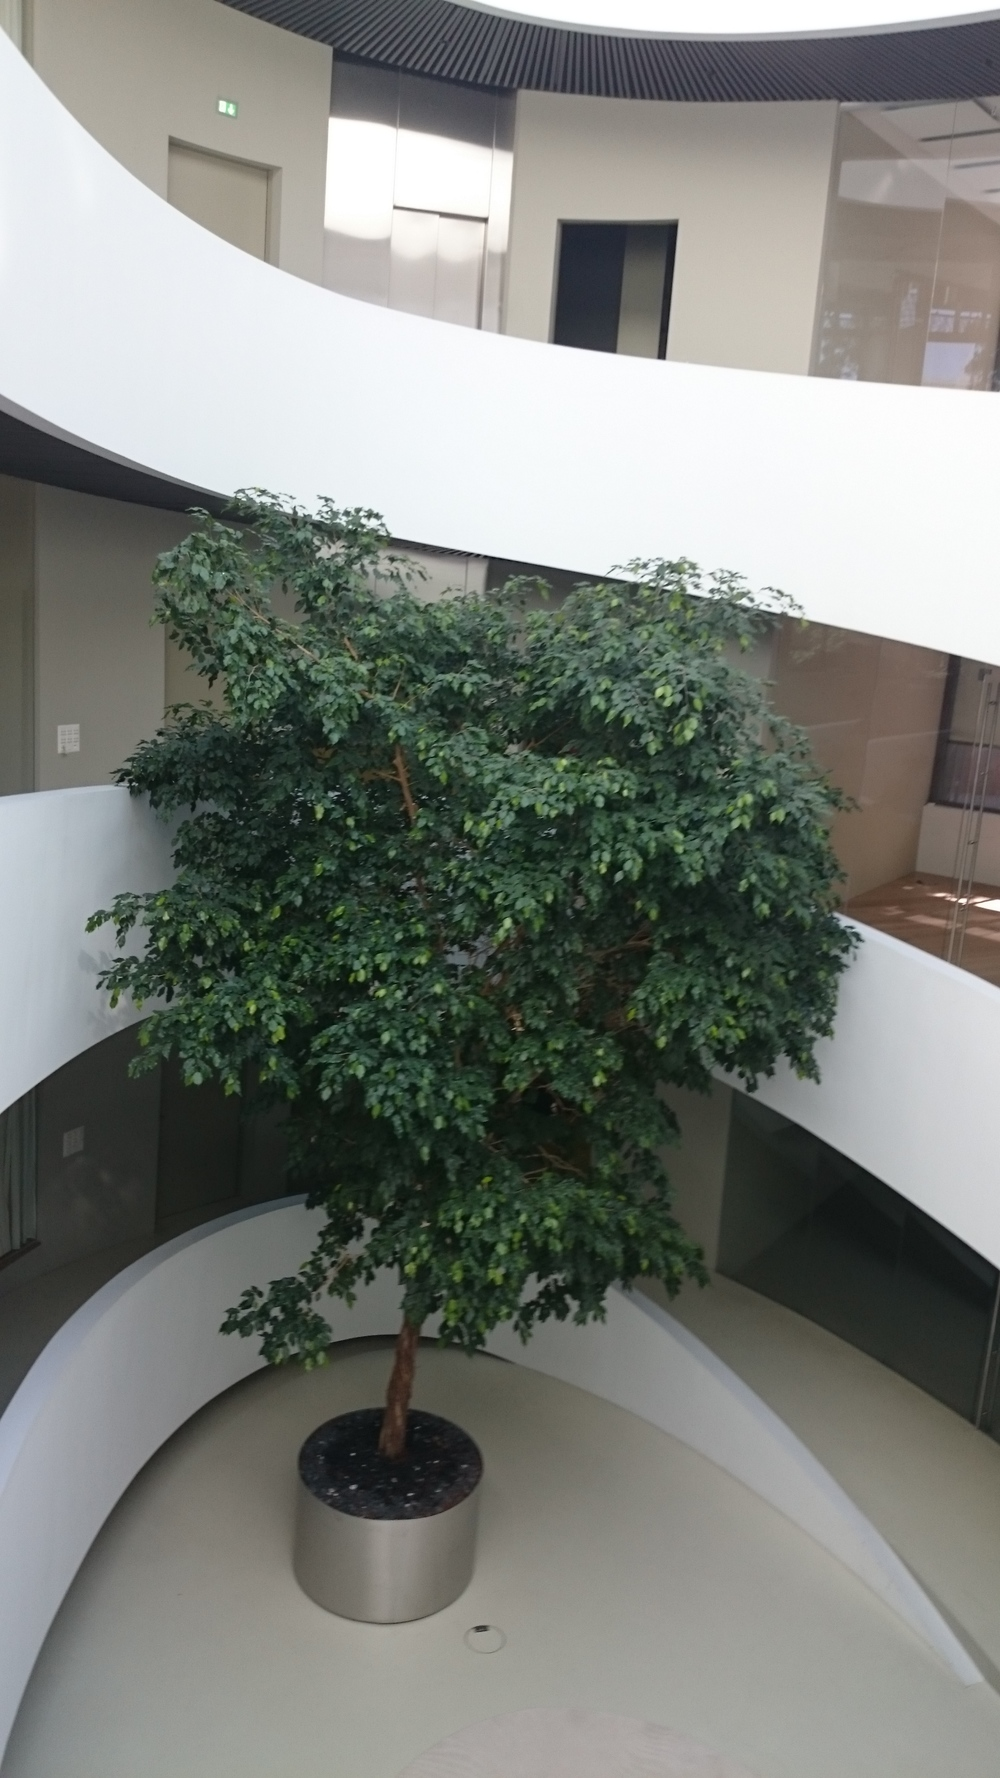 Roger Federer donated this tree for this office building